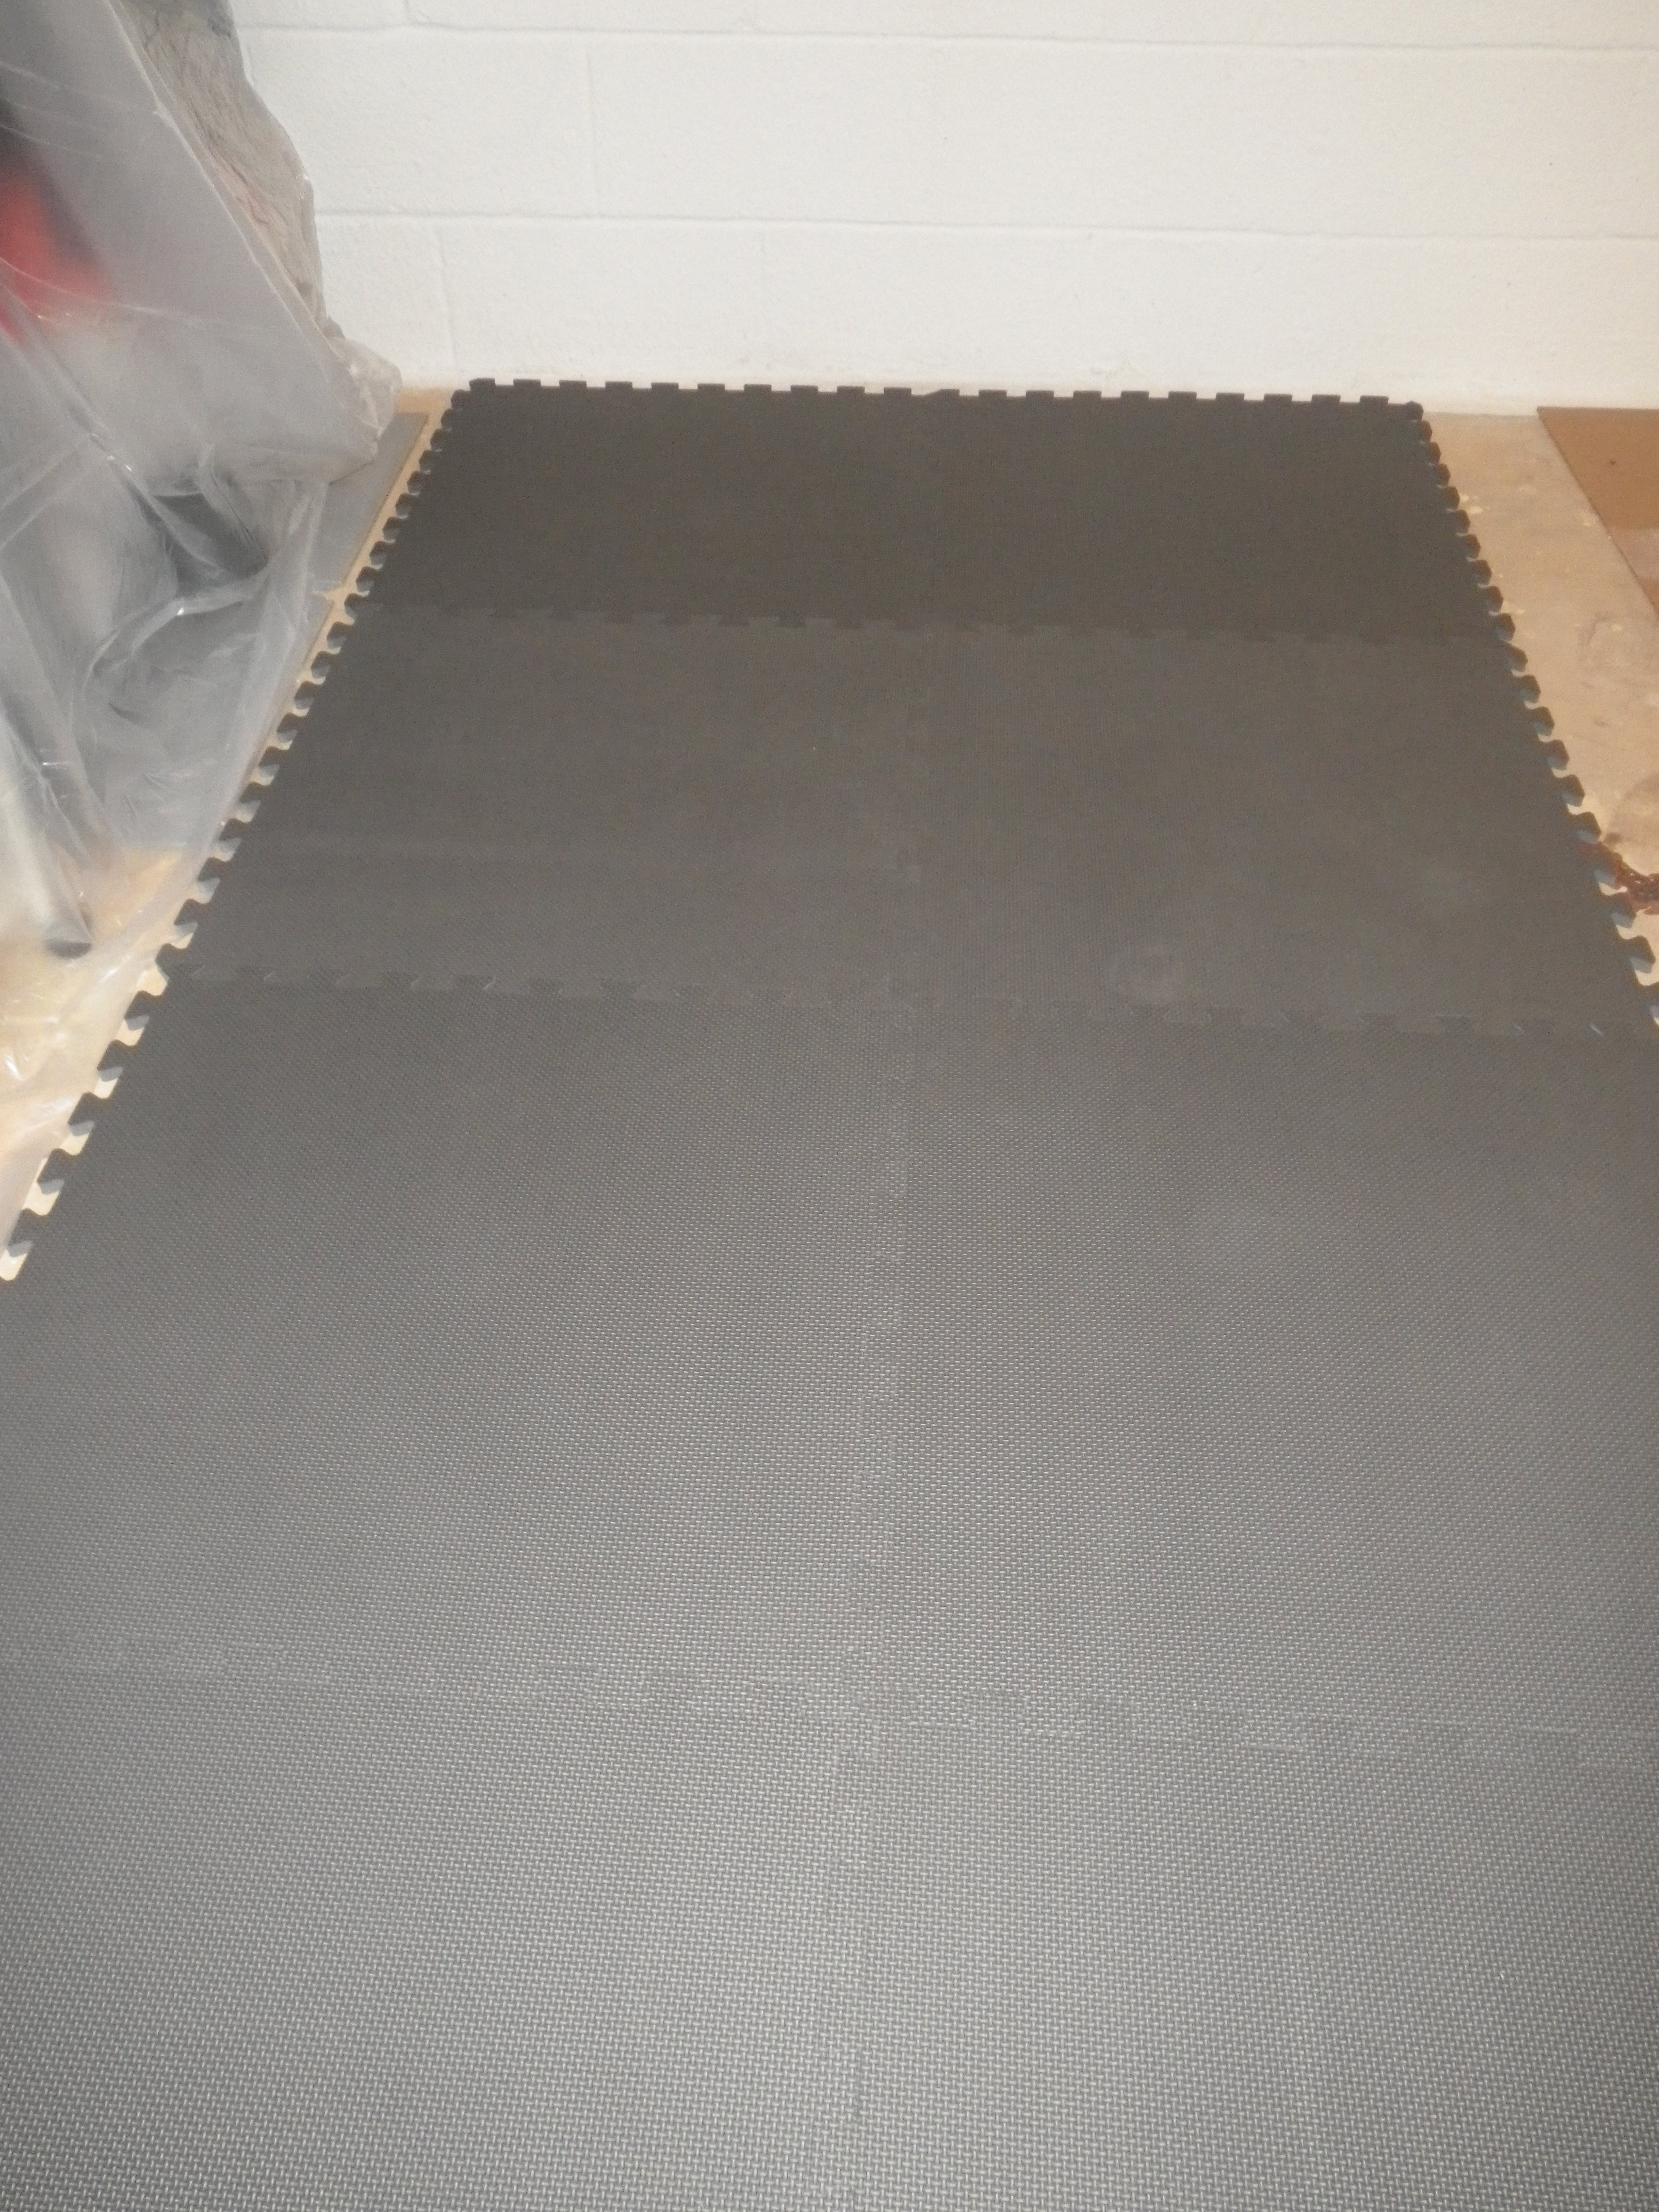 guides safety on piece deals play at eva puzzle foam find non baby high shopping line cheap with get toxic mat mats quotations